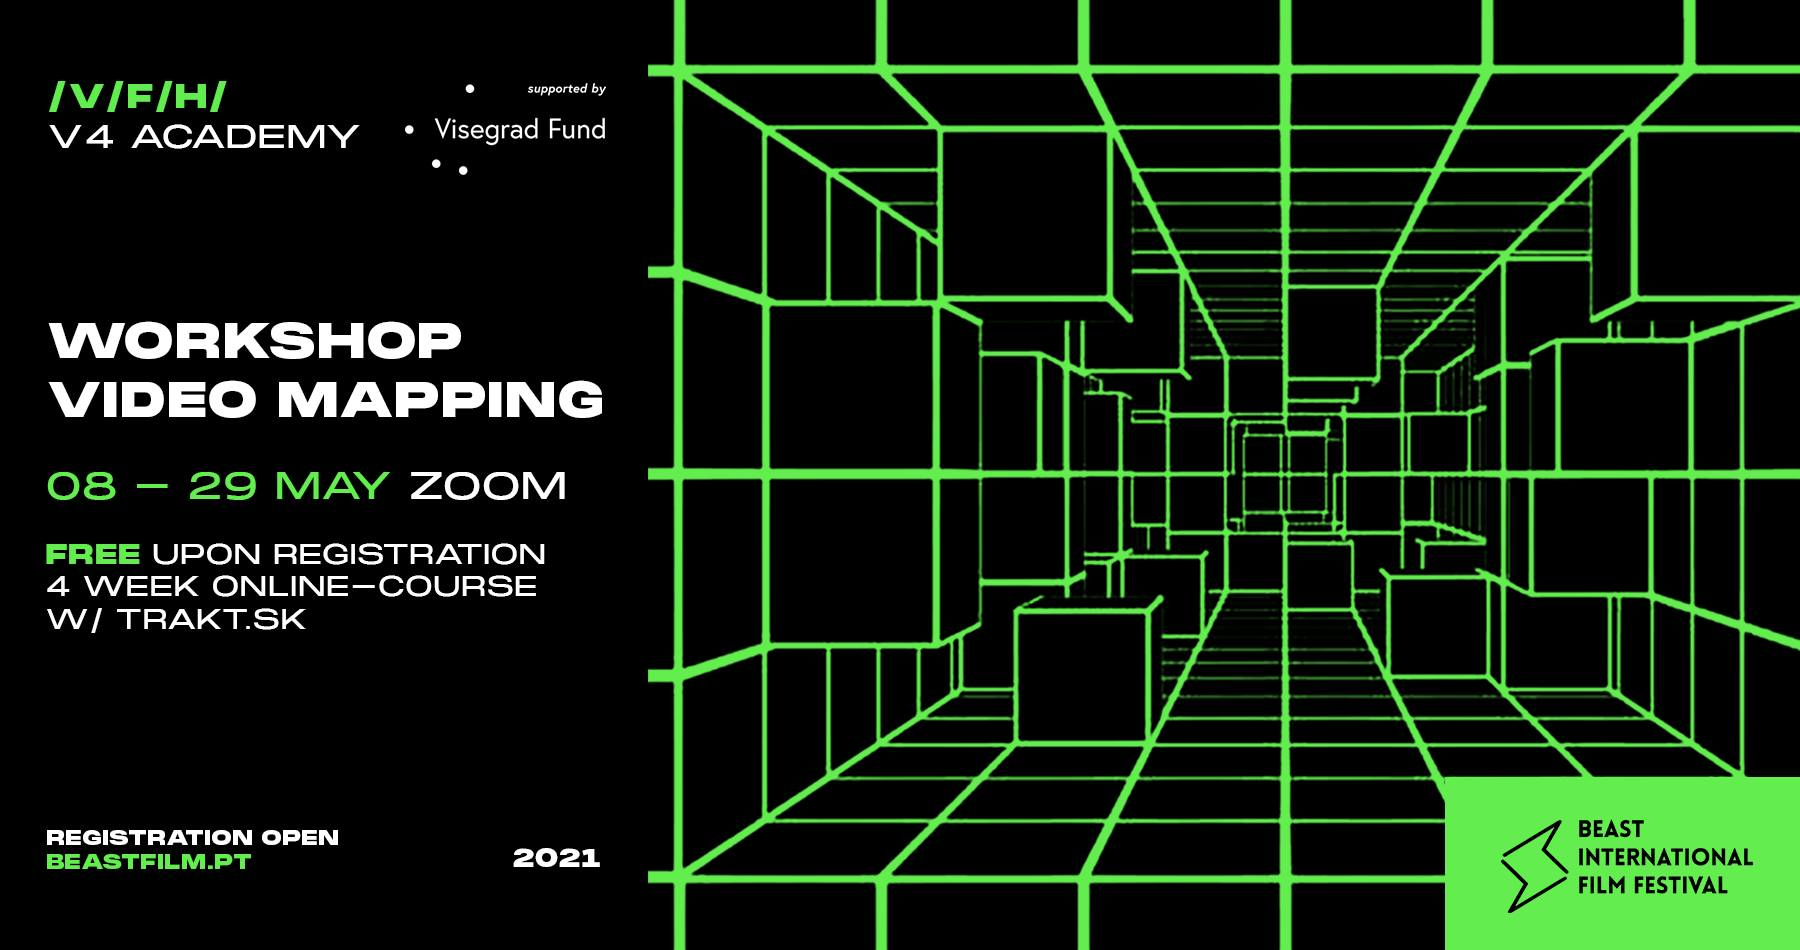 VIDEO MAPPING WORKSHOP | V4 ACADEMY